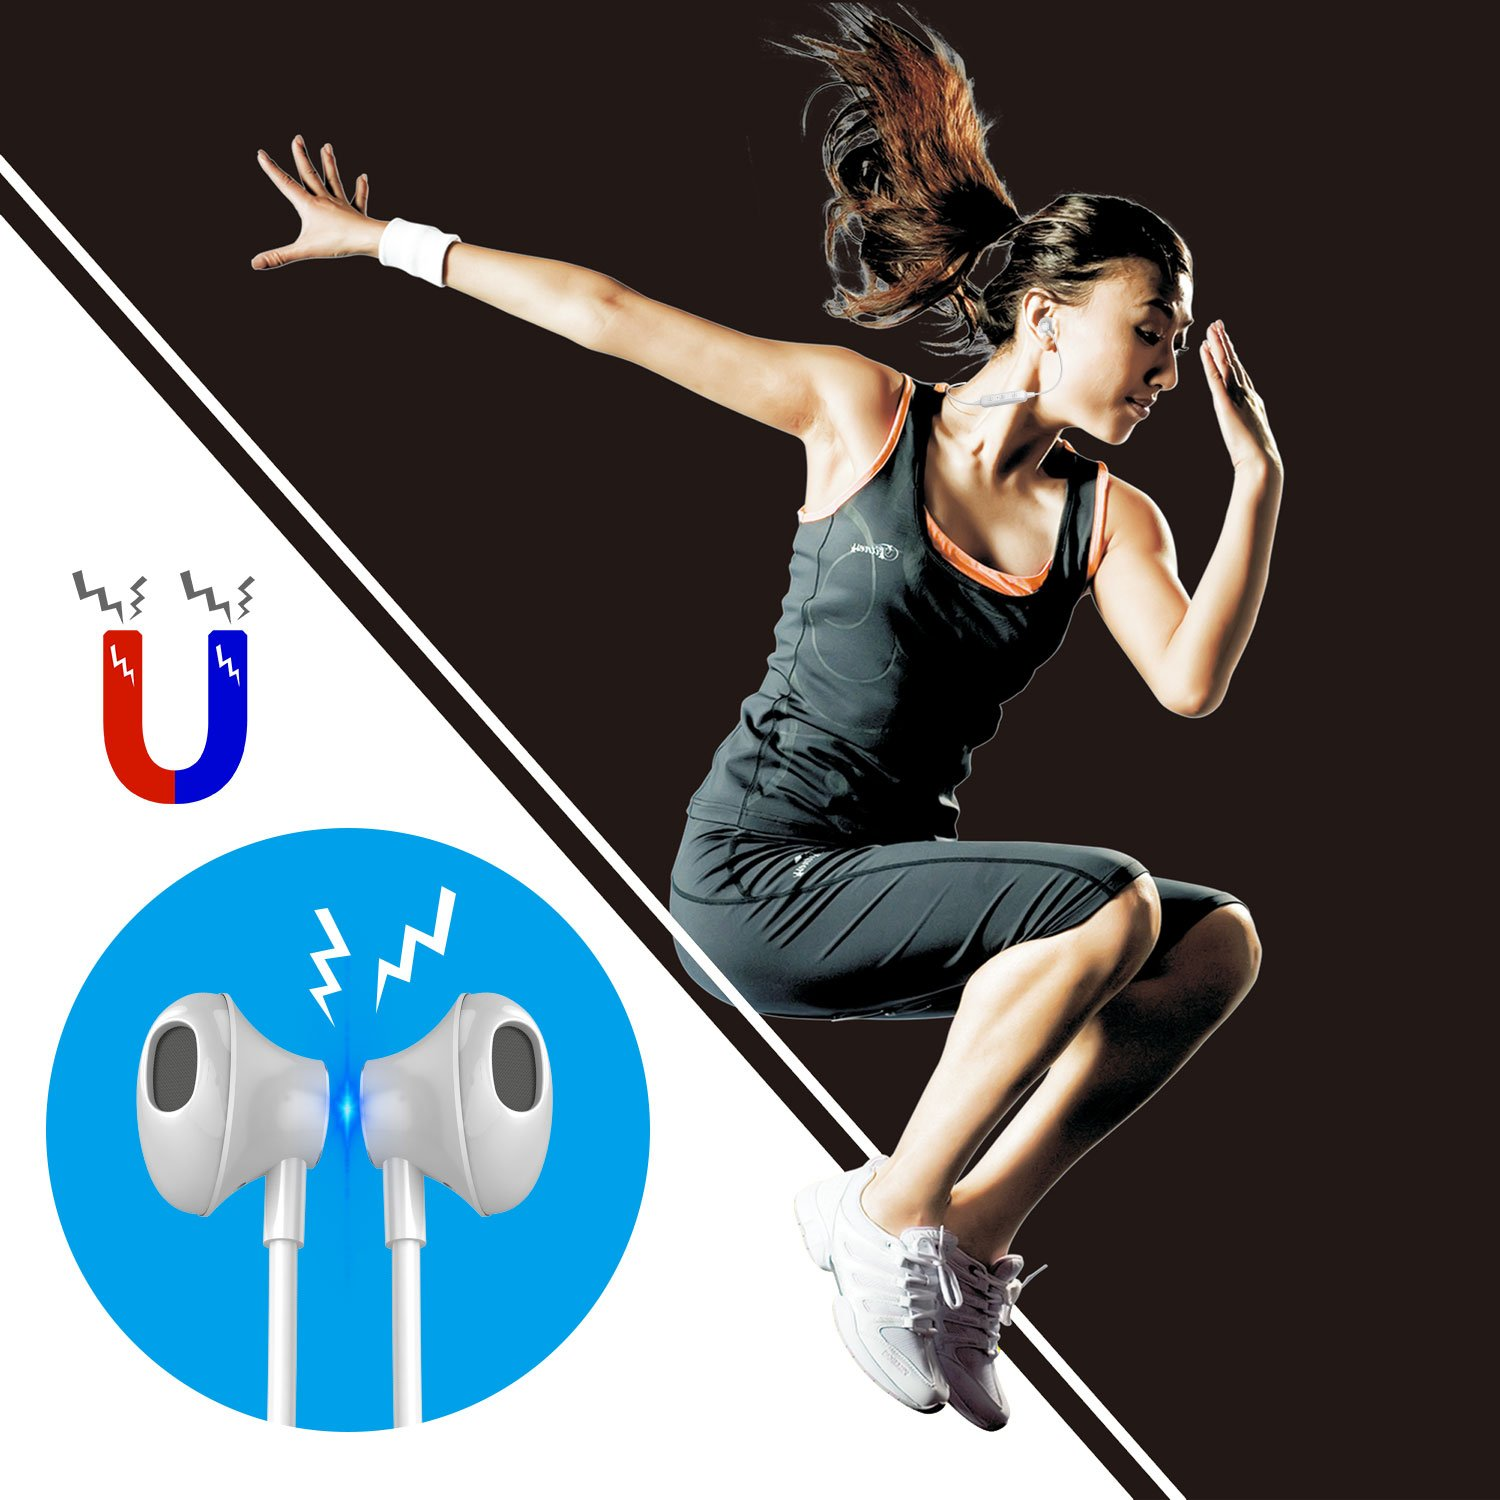 Bluetooth Headphones Wireless, Earphones Stereo Magnetic Earbuds, Sweatproof Mobile Headsets, Secure Fit, Noise Cancelling Mic, Clear Voice Capture & 5 Hrs Playtime for Gaming, Sports (White W2)